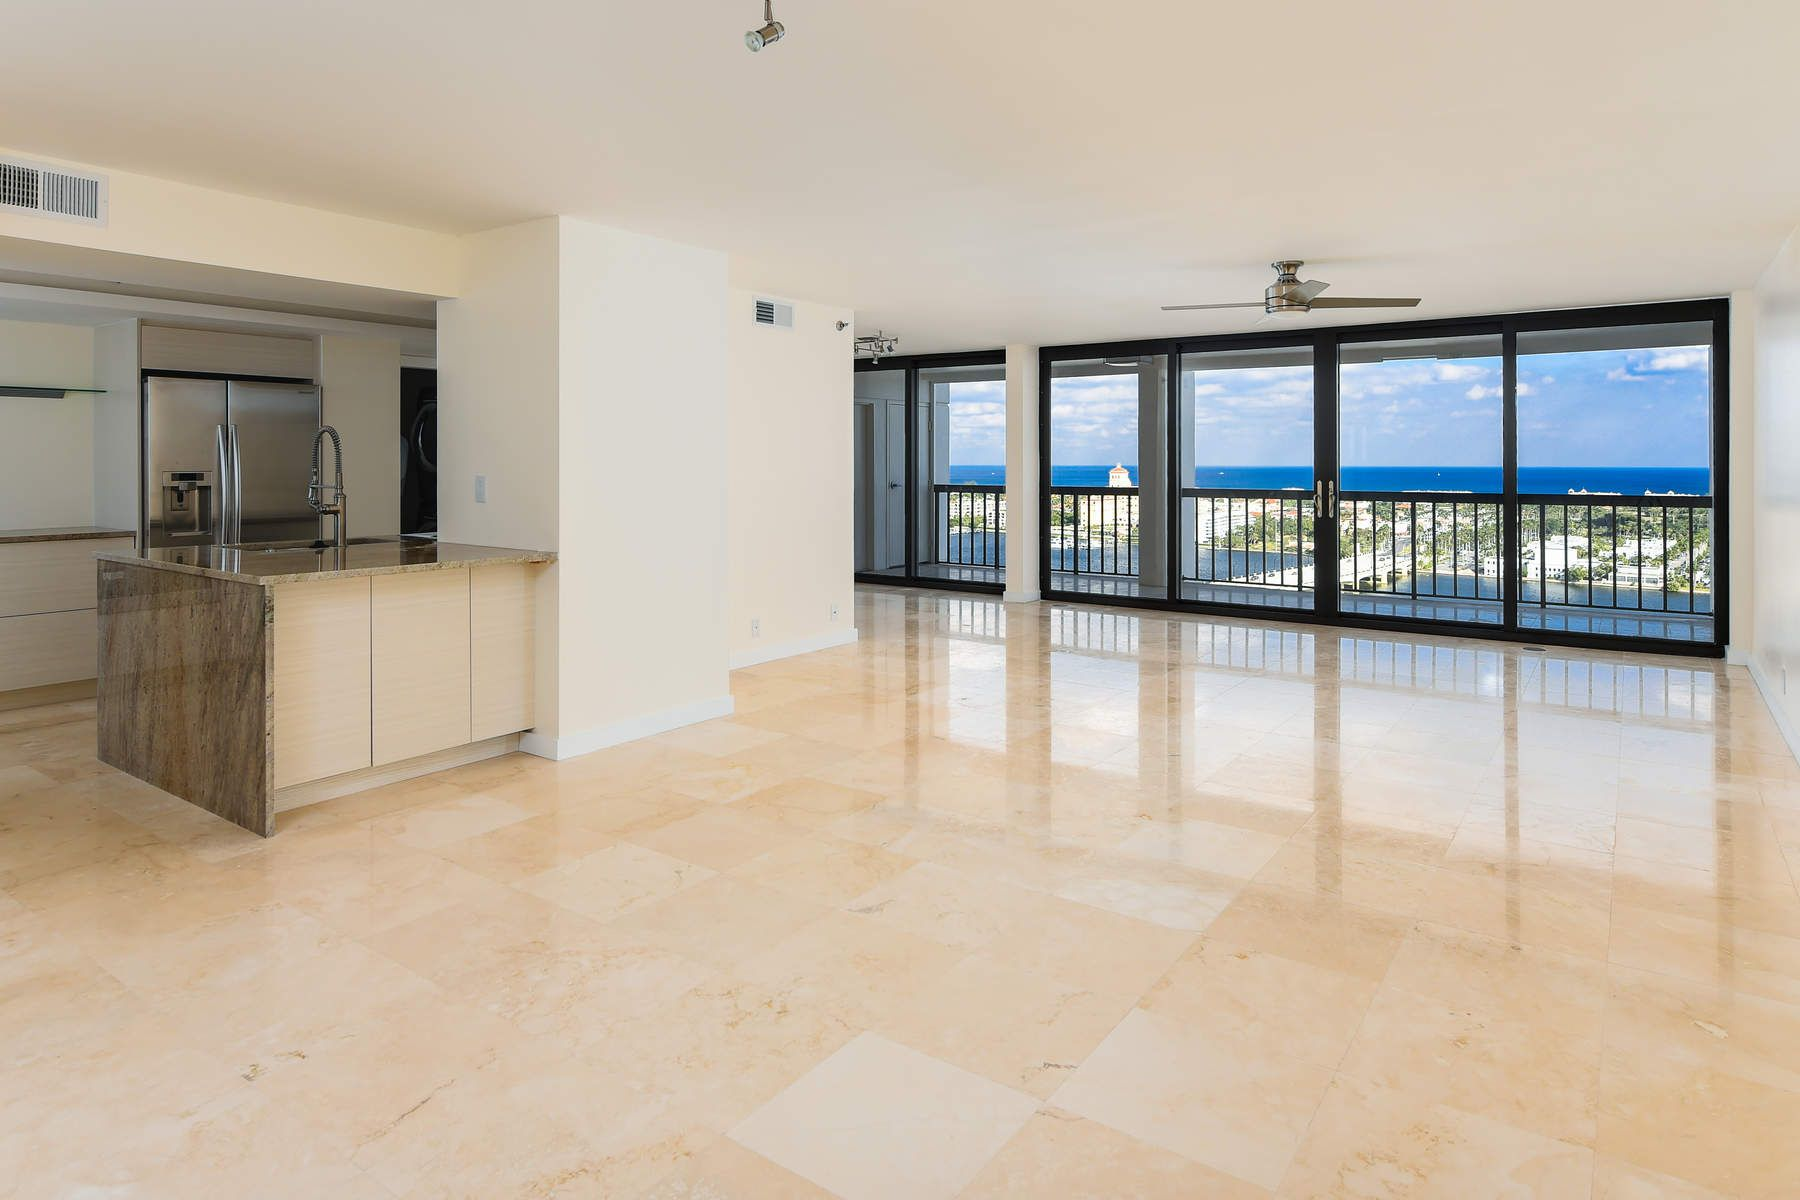 Appartement voor Verkoop een t Waterview Towers 400 N Flagler Dr Ph B2 West Palm Beach, Florida 33401 Verenigde Staten